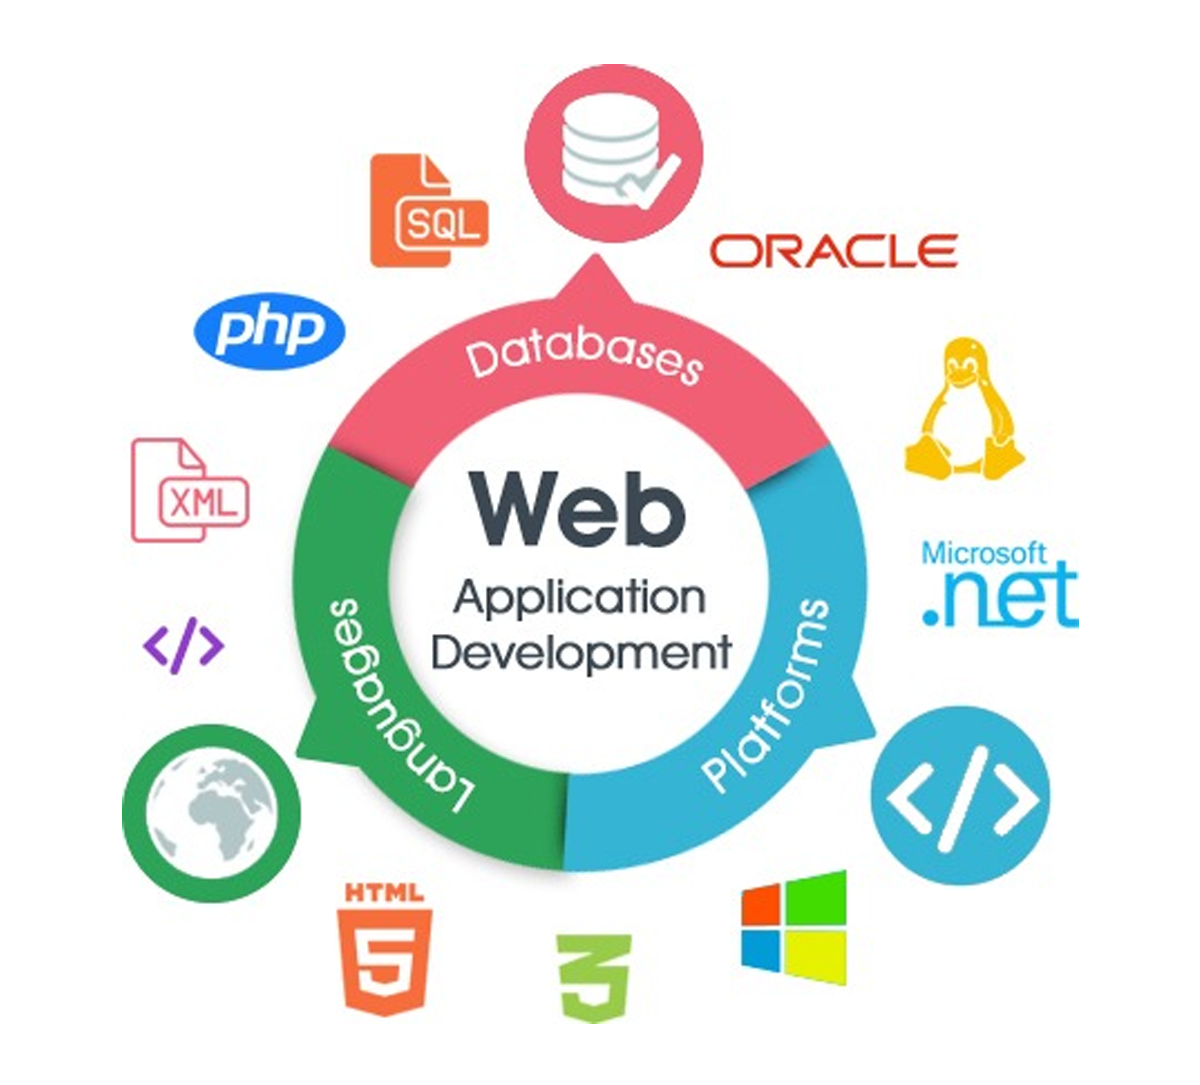 http://arksstechnologies.com/wp-content/upload/2018/06/web-development-application.png